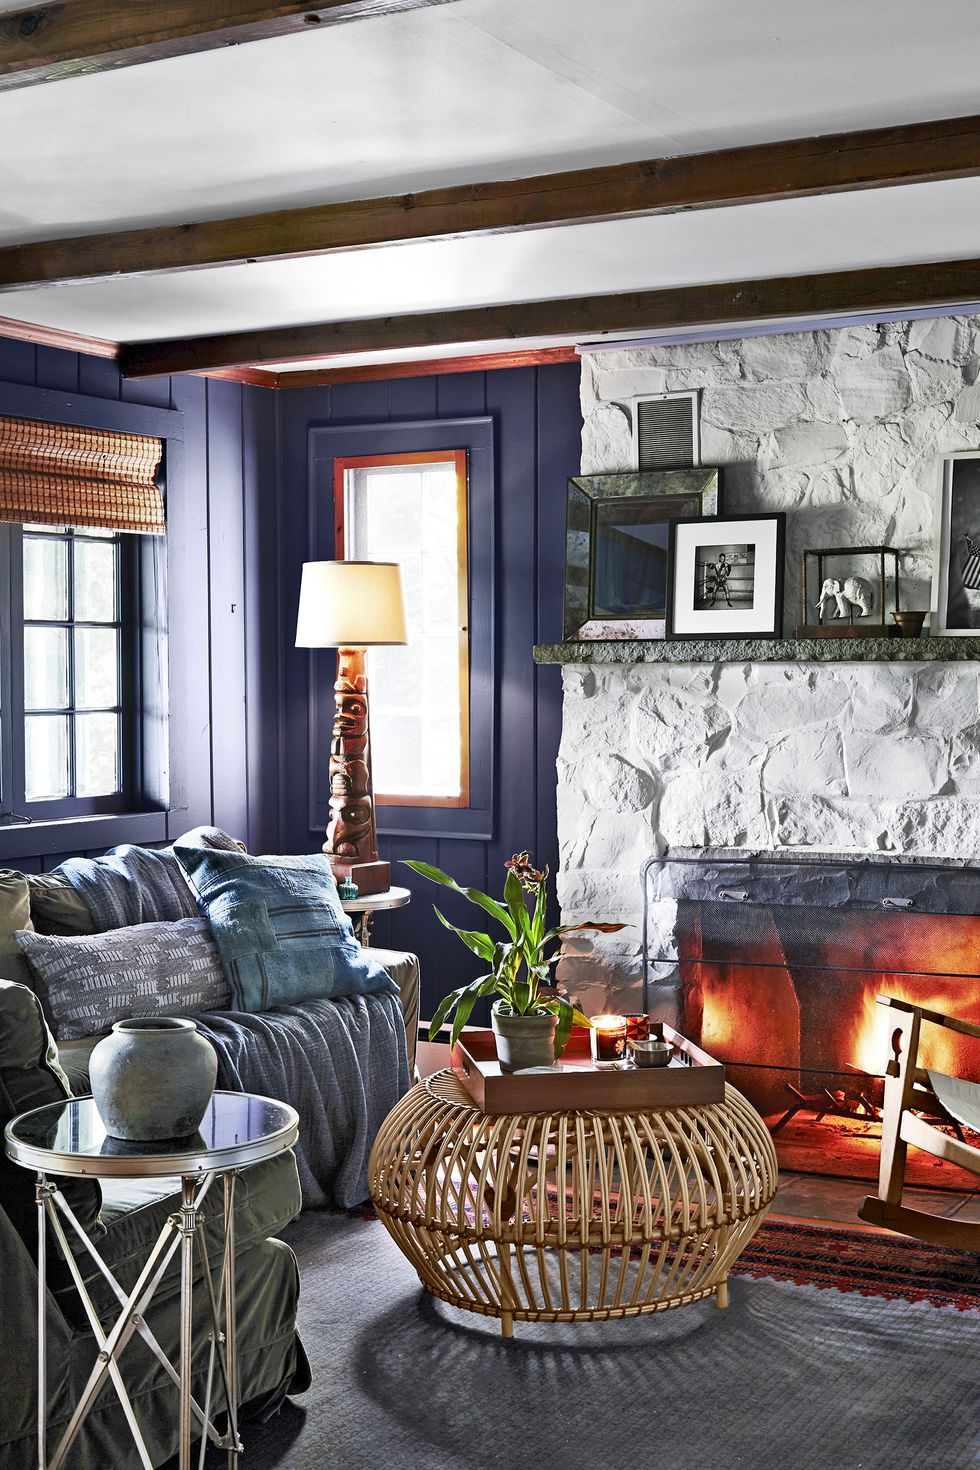 ColorTyme - How to Begin a Living Room Remodel - ColorTyme Blog